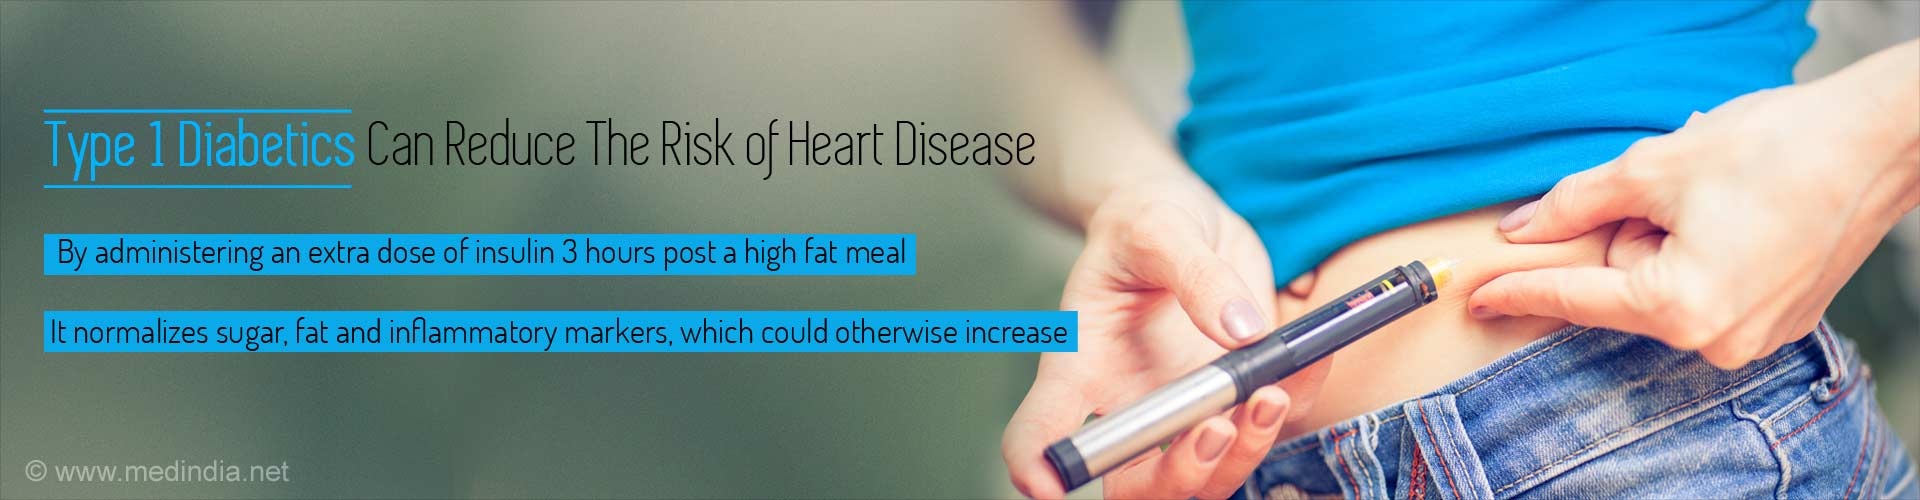 Type 1 Diabetics Can Reduce The Risk of Heart Disease - By administering an extra dose of insulin 3 hours post a high fat meal - It normalizes sugar, fat and inflammatory markers, which could otherwise increase